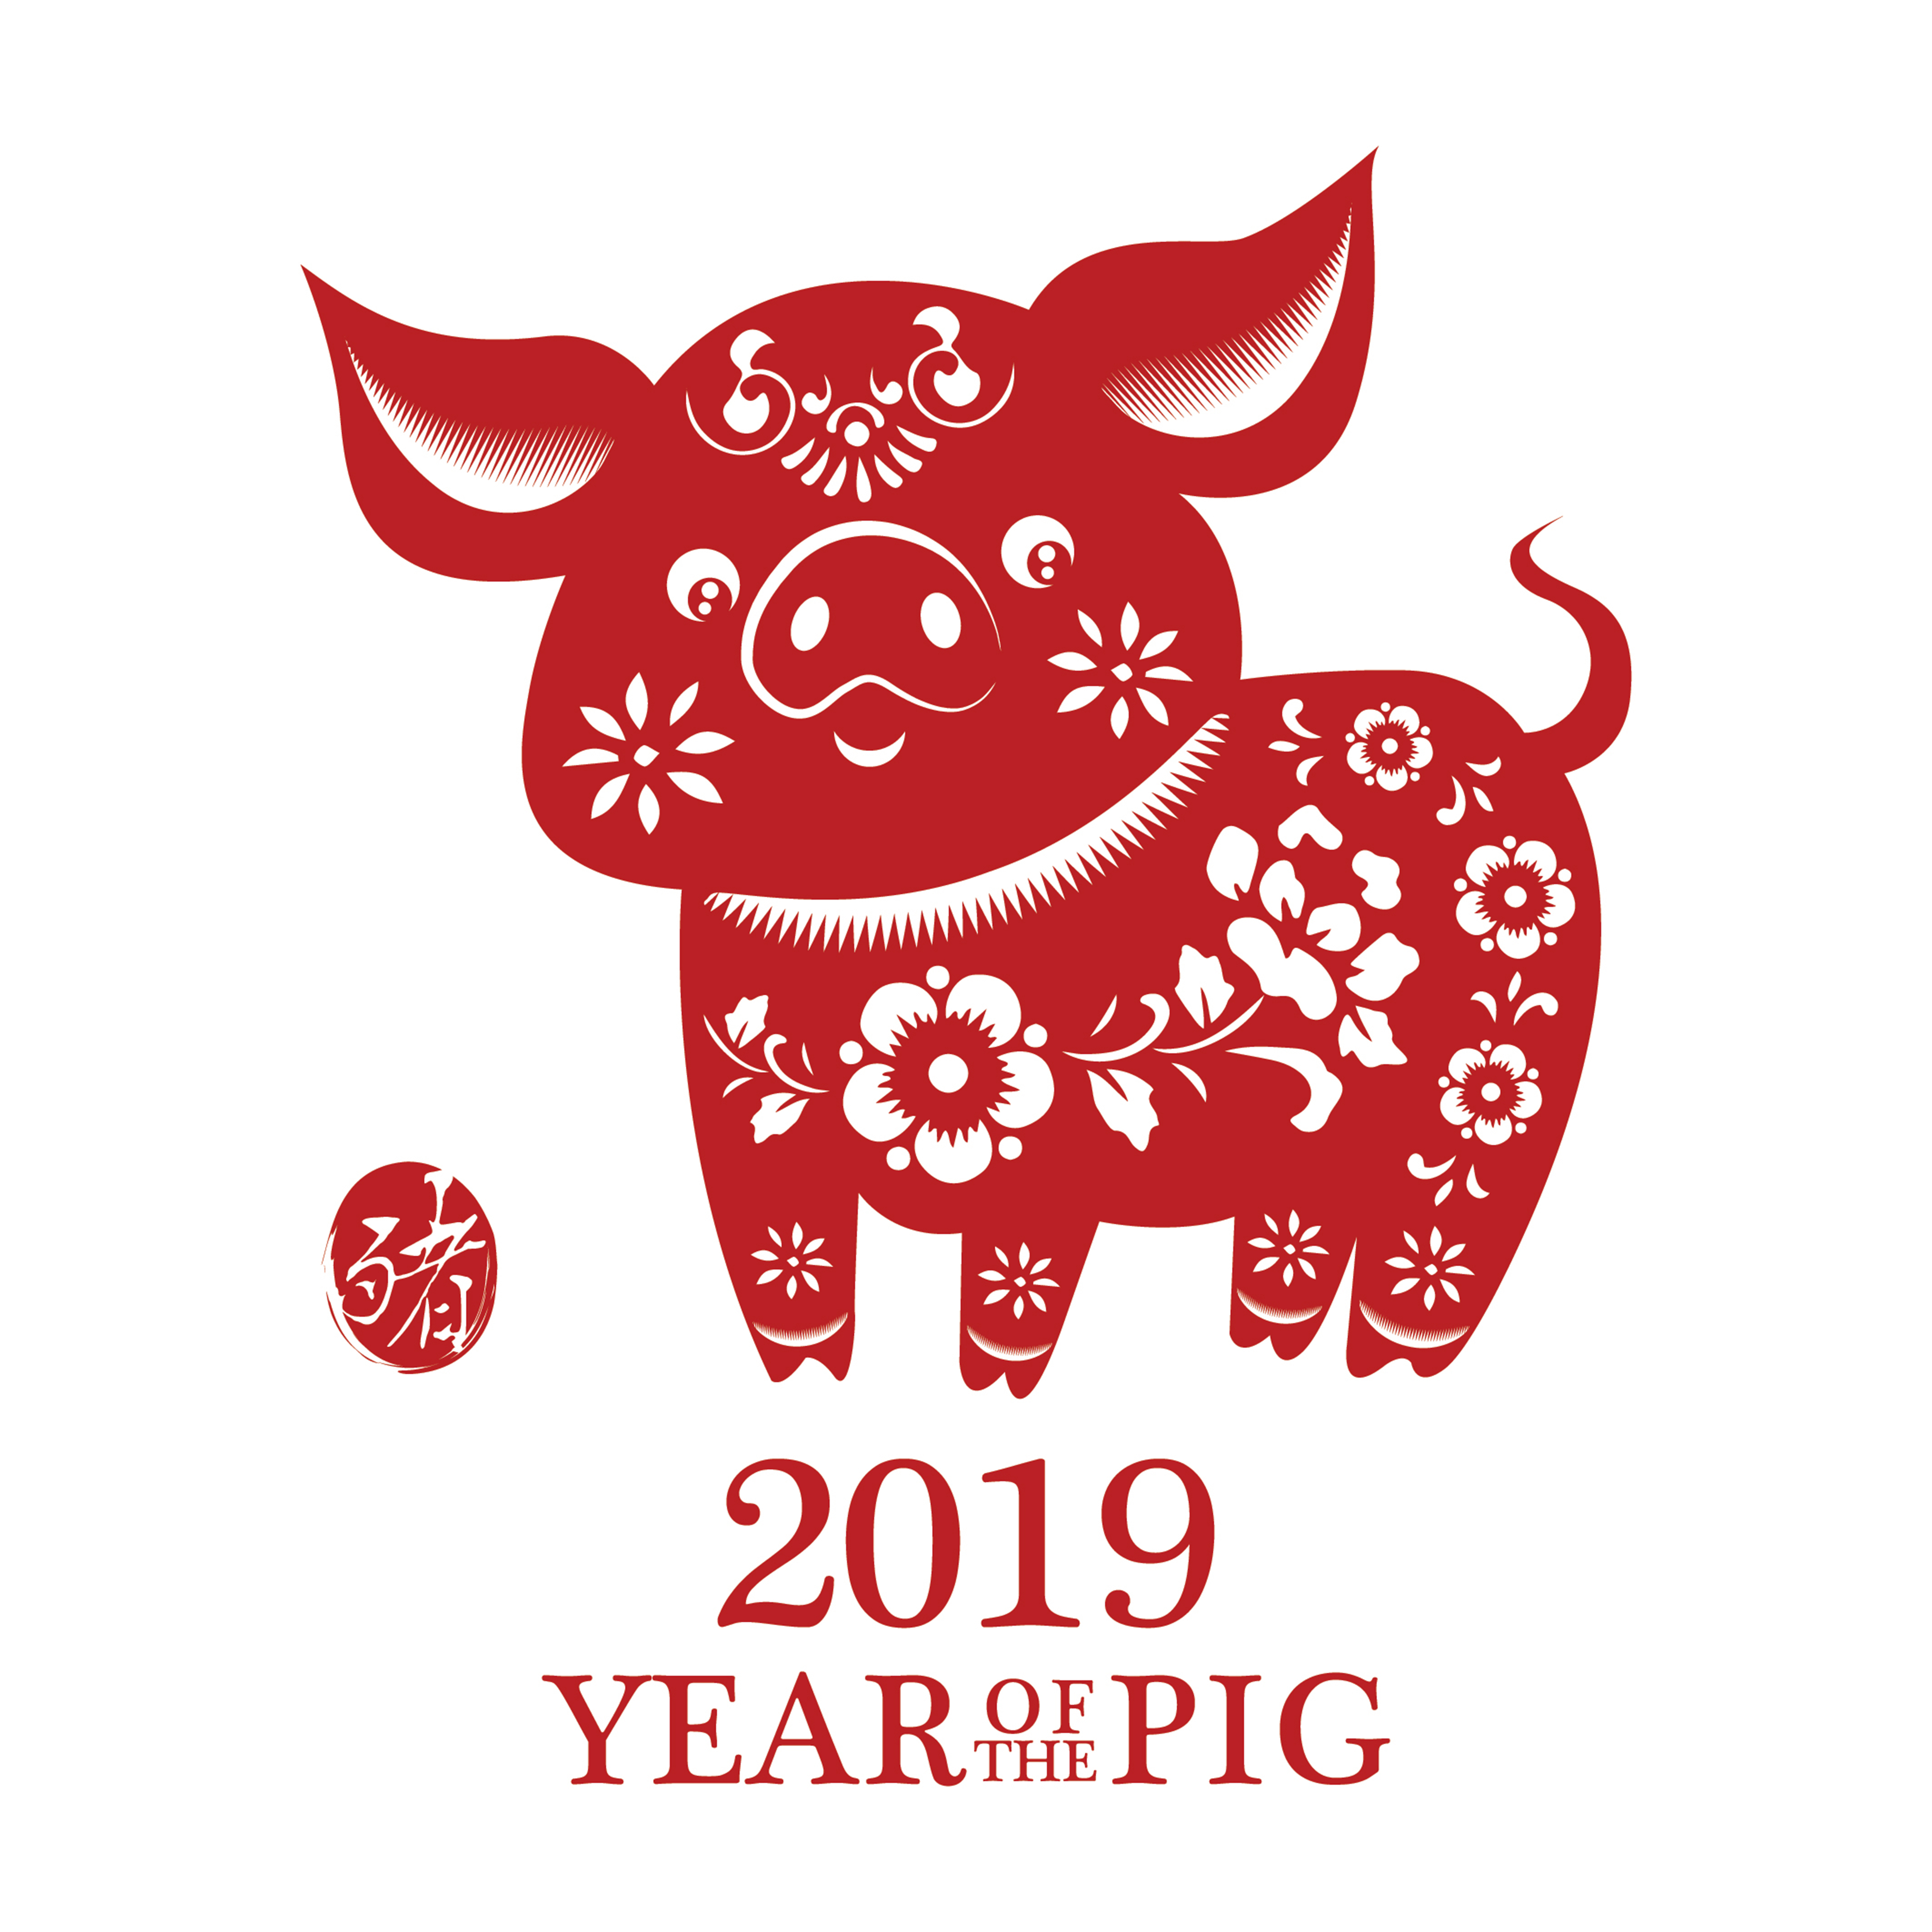 YEAR OF THE EARTH PIG 2019 AND YOUR MONEY.